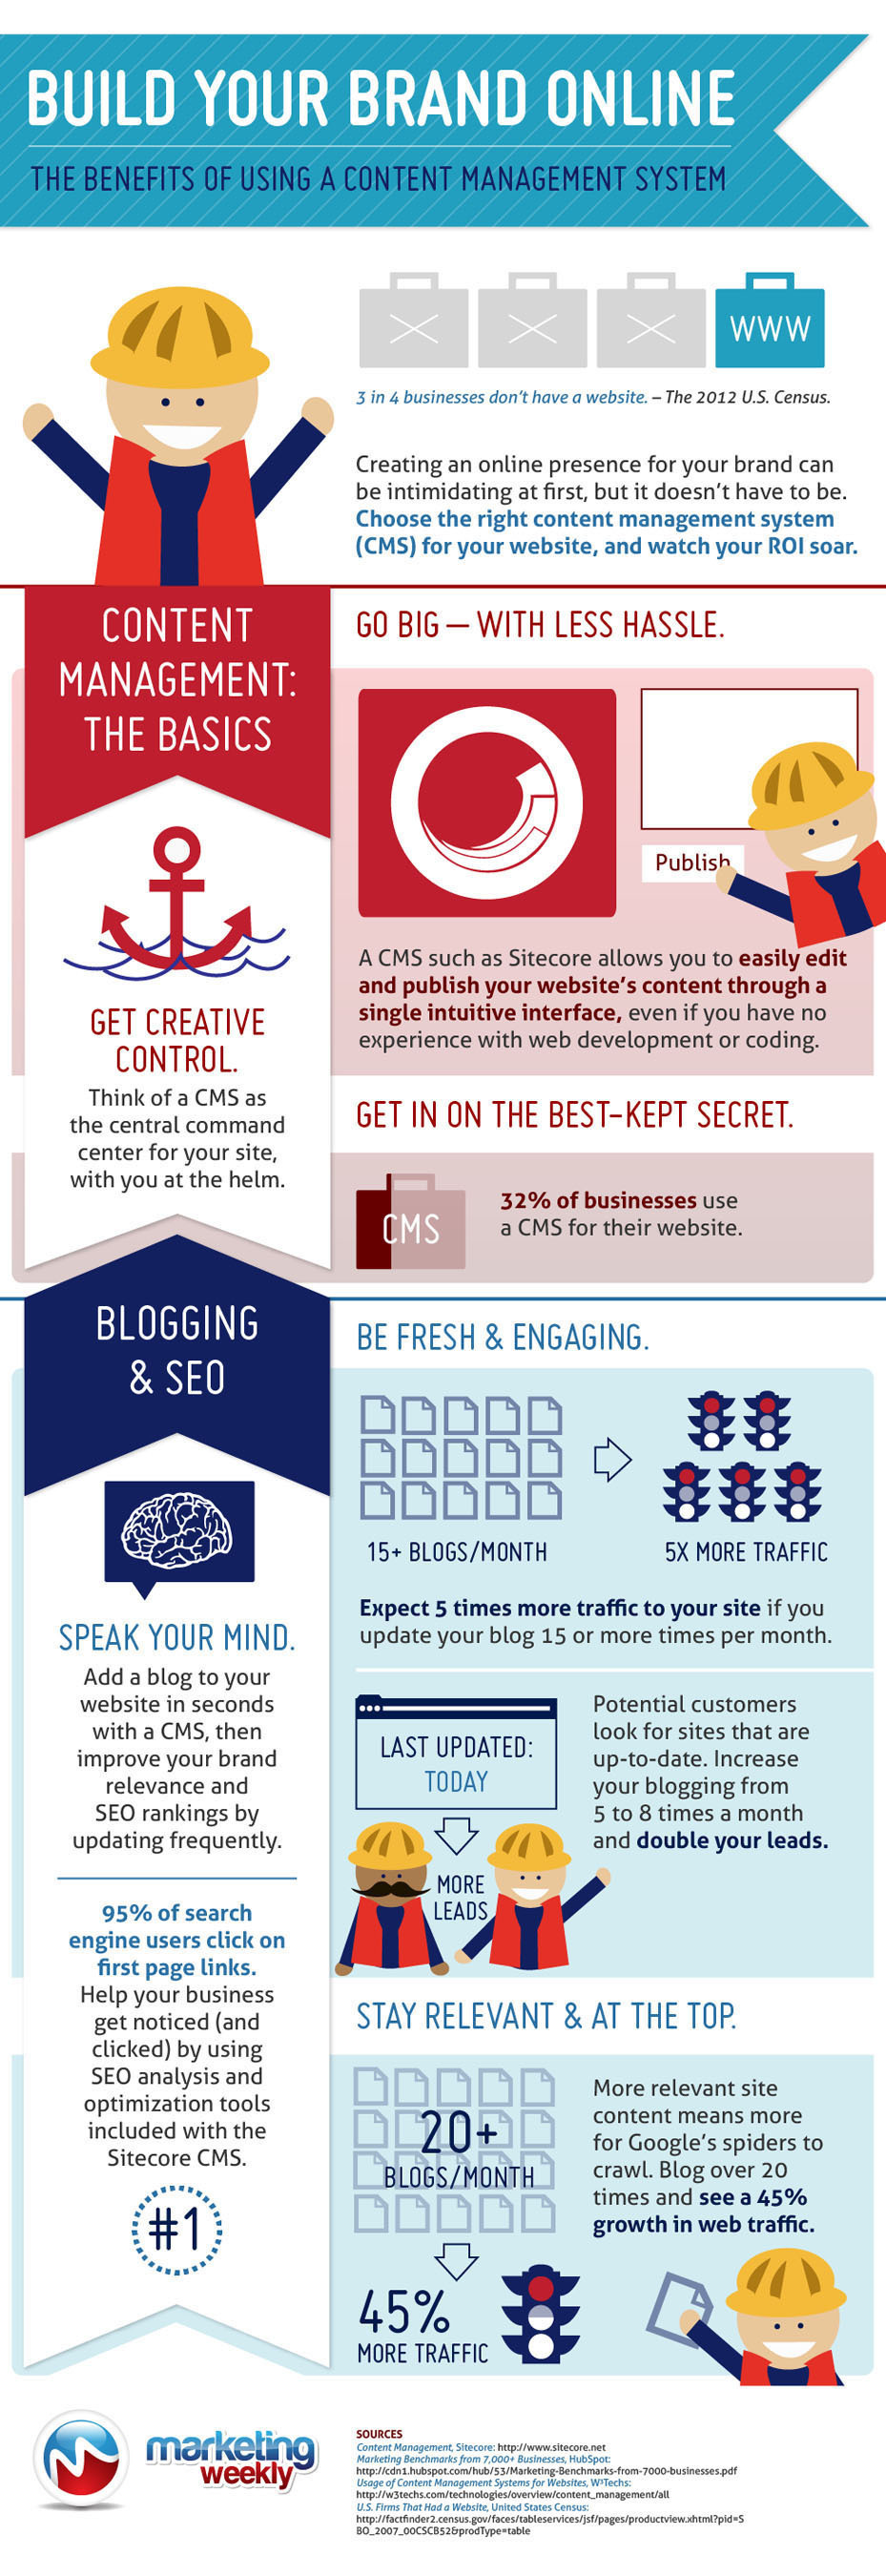 Marketing Weekly infographic shows the benefits of a CMS